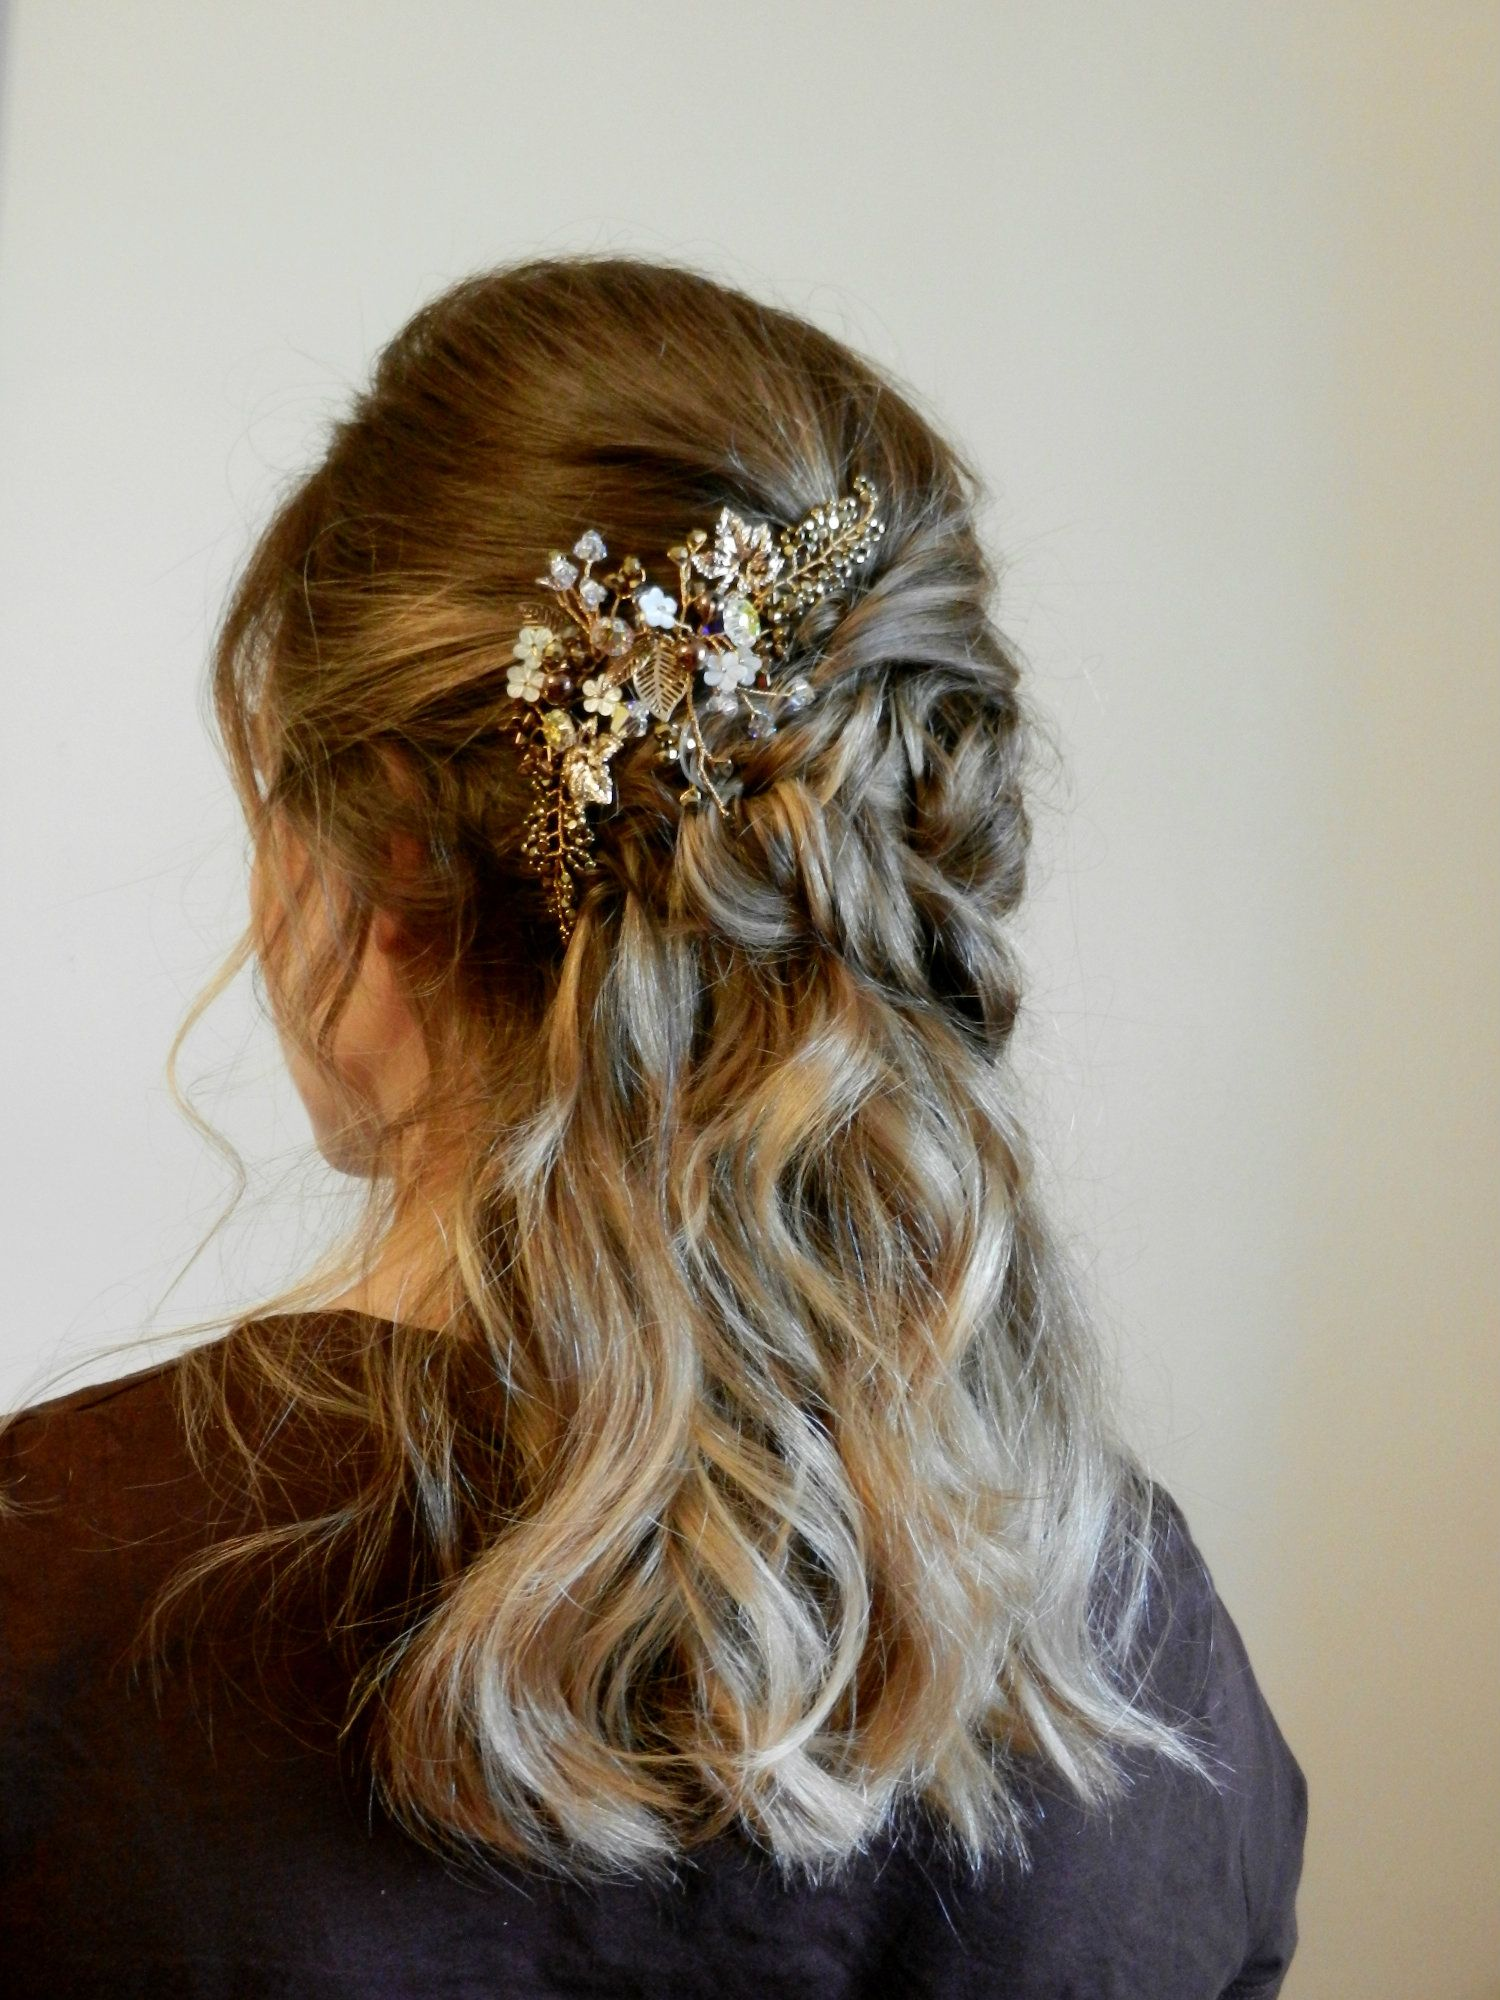 bespoke-autumnal-occasion-bridal-hair-accessory-UK-GLDDSCN9693